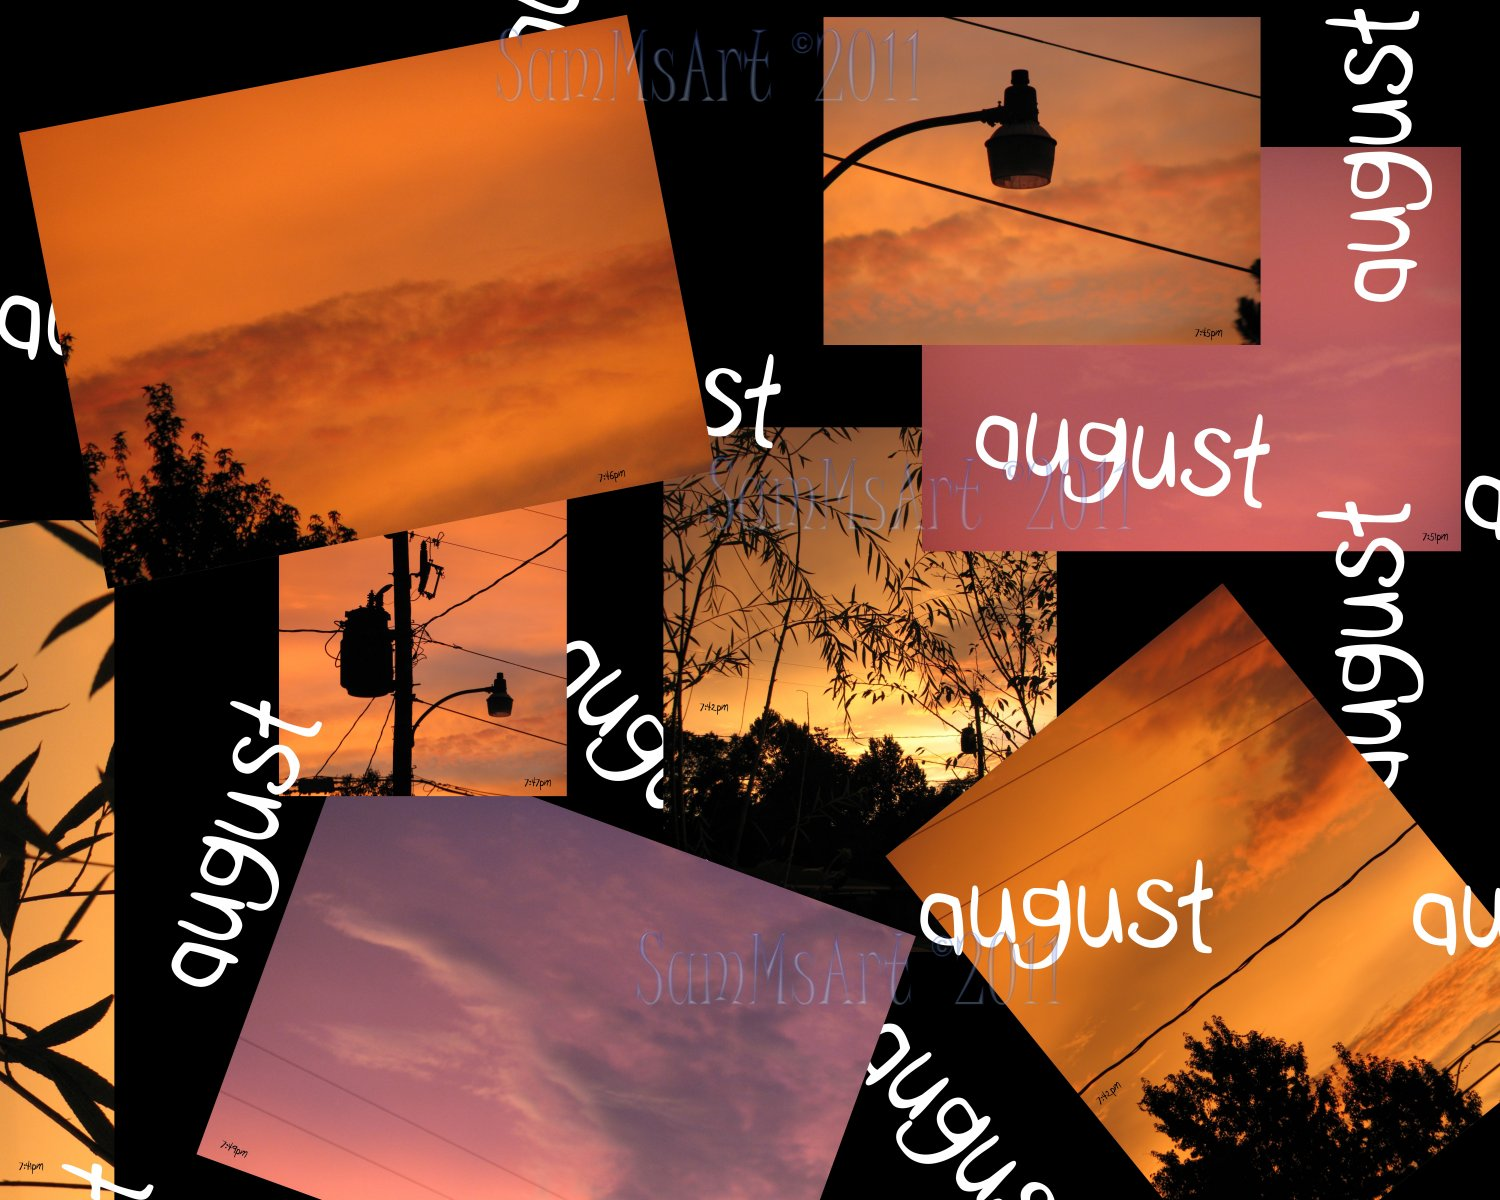 August - 8x10 Print, Digital Fine Art Image Photo - Sunset, summer, fall, Power lines, Clouds